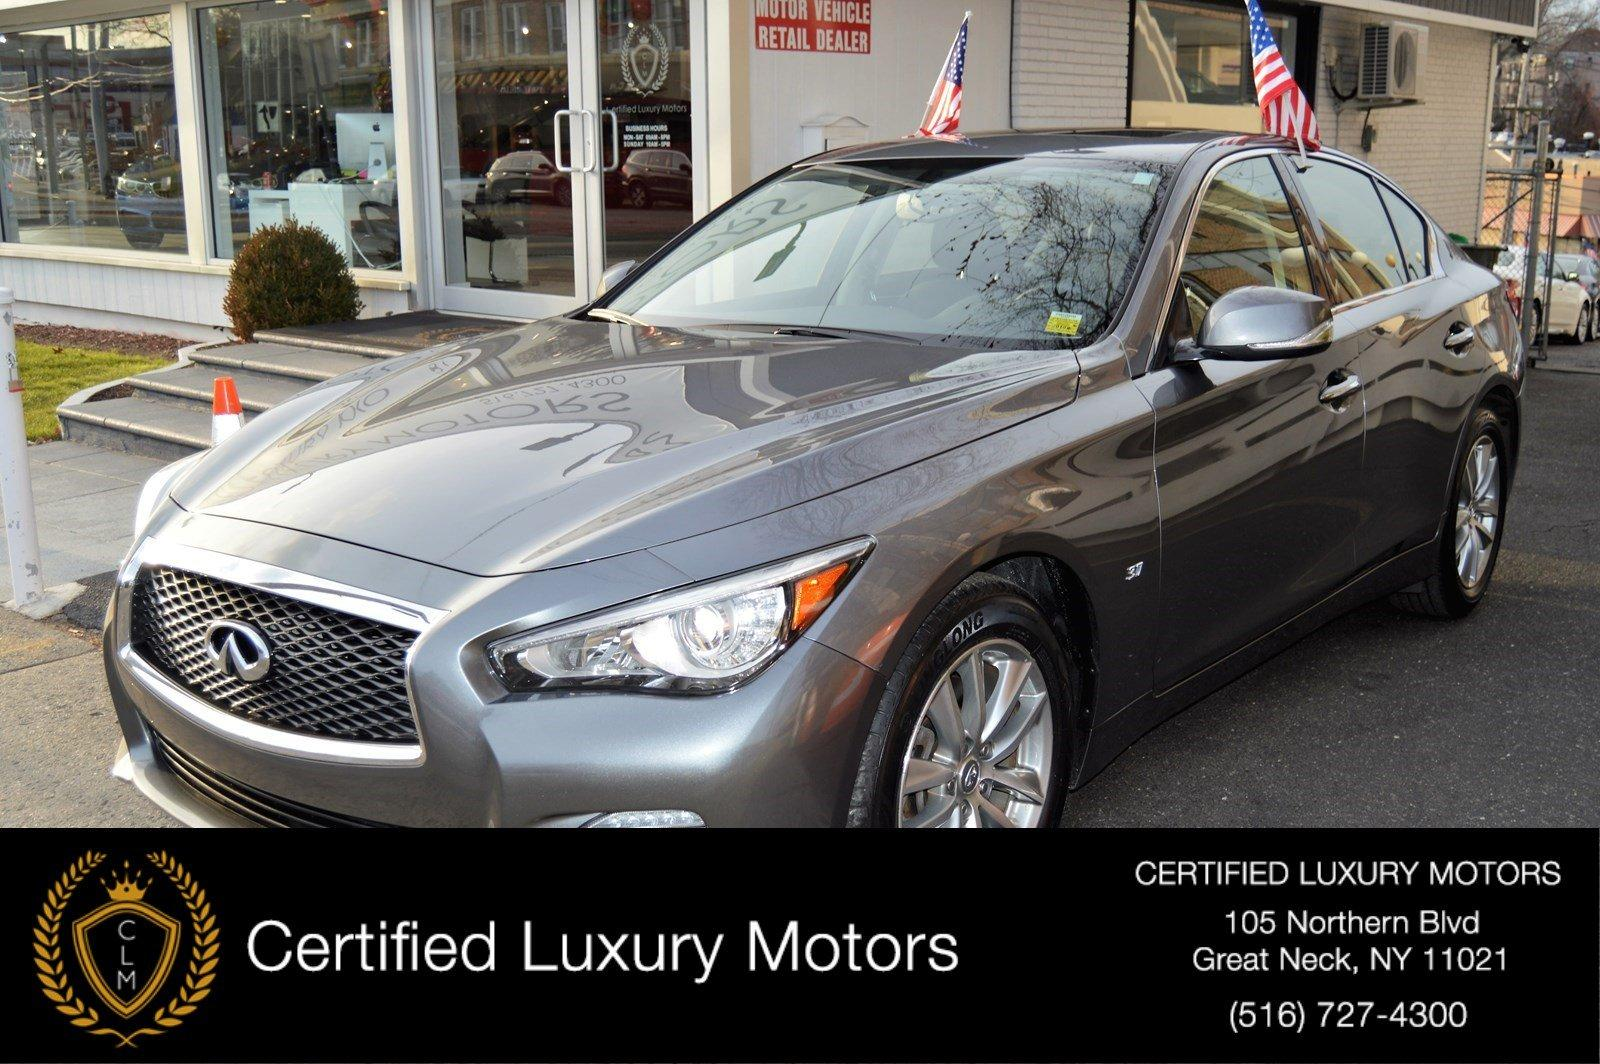 Motors and vehicles ny vehicle ideas for Queens mercedes benz dealers